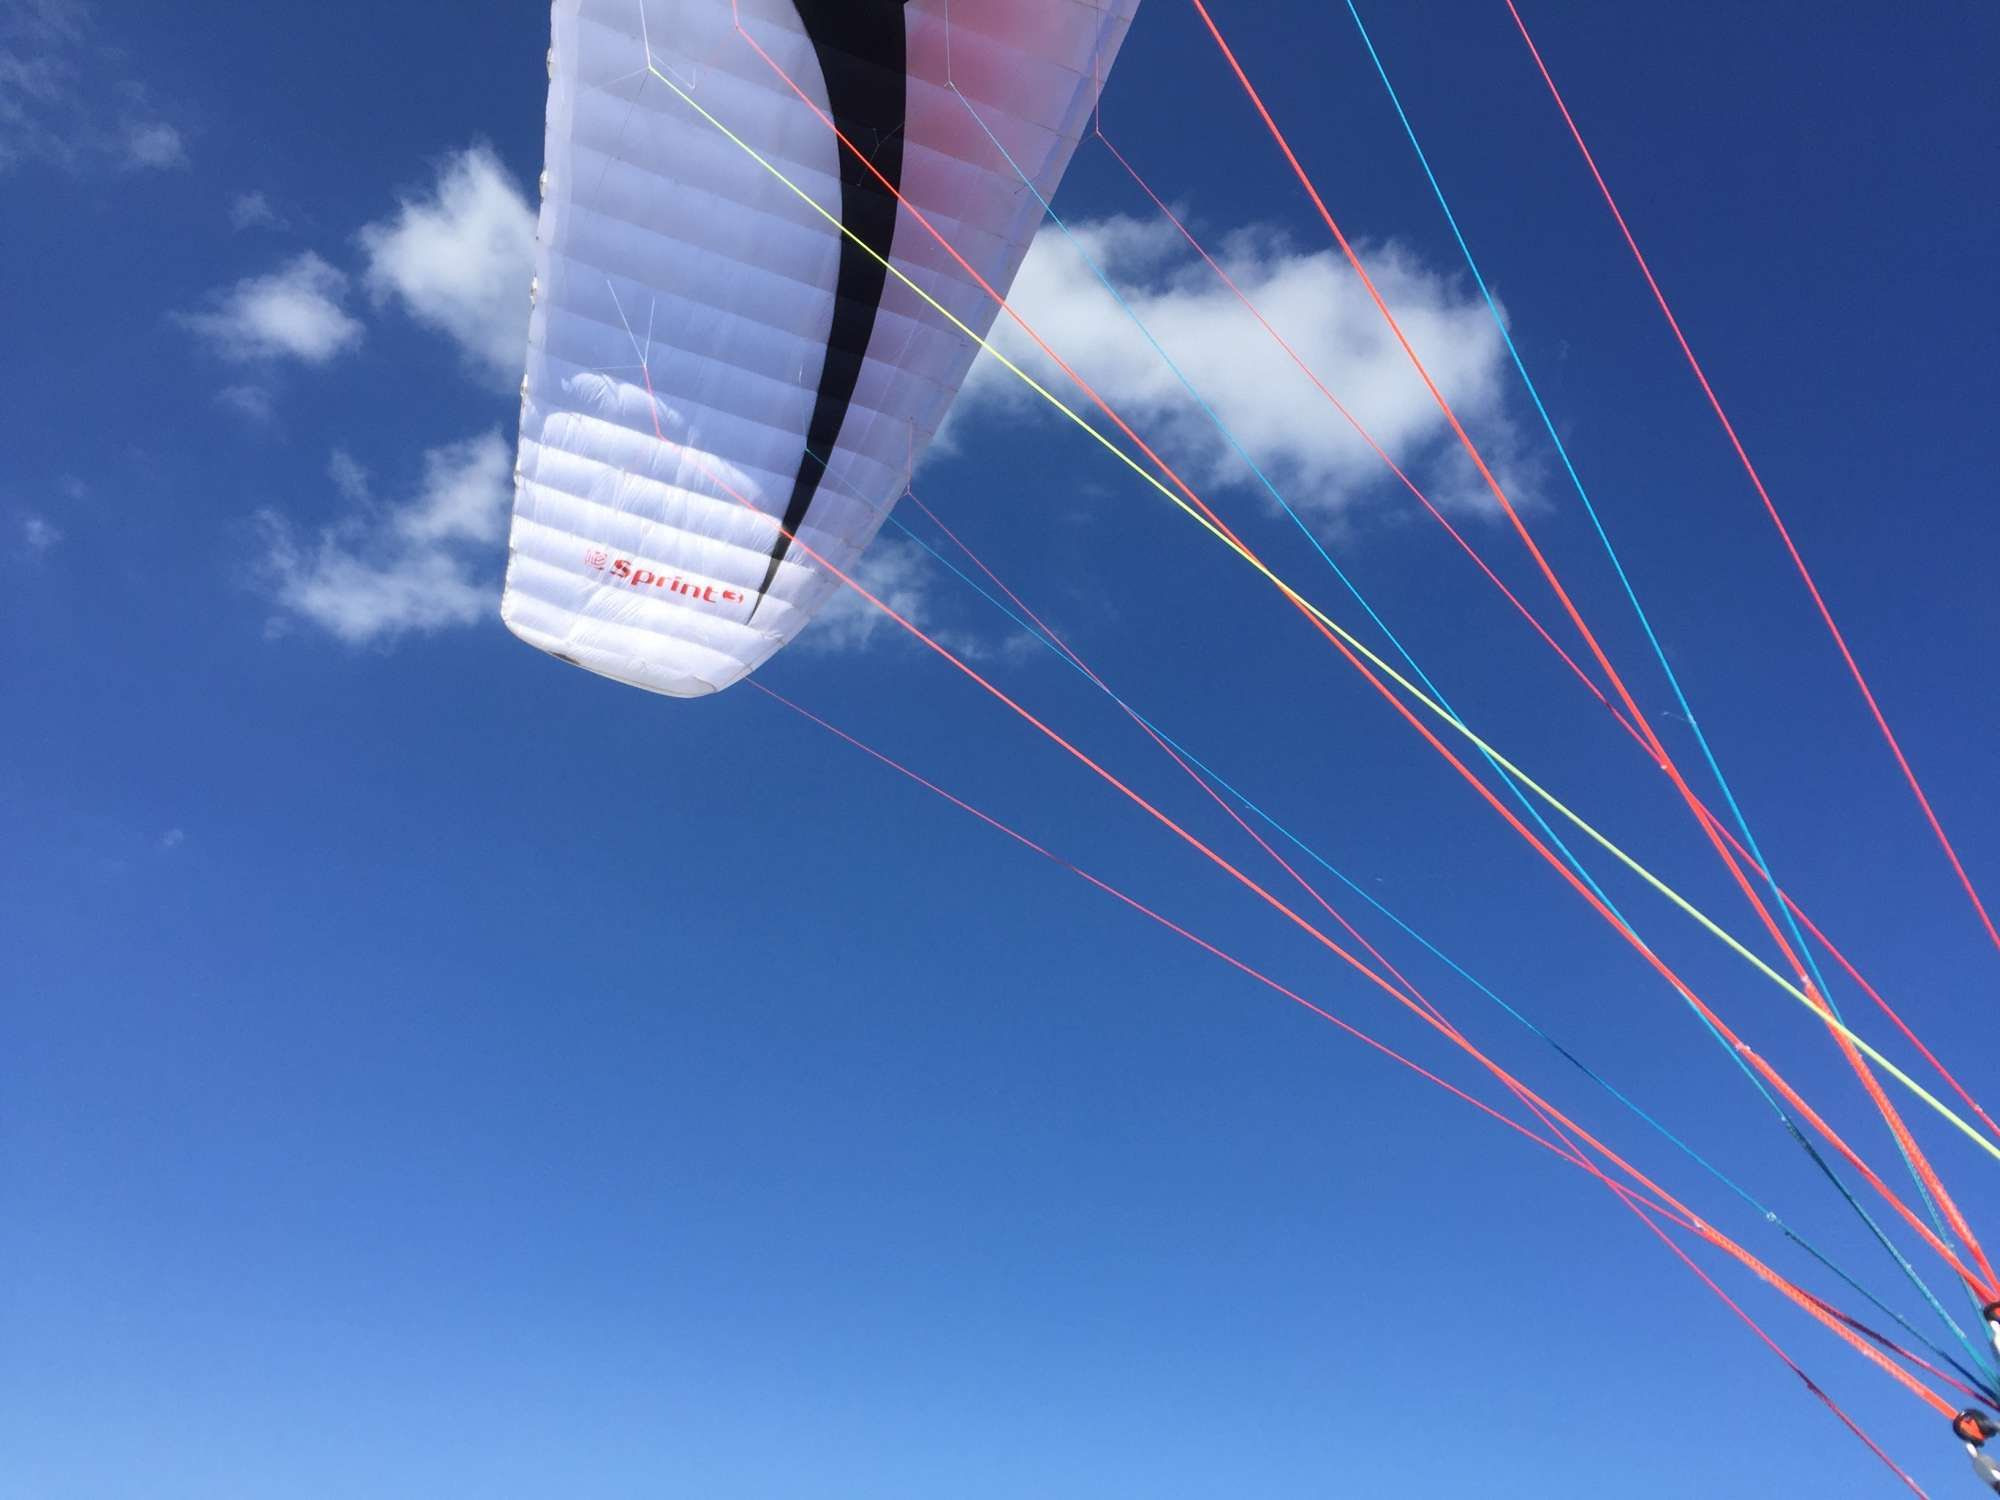 Lightweight paraglider wings